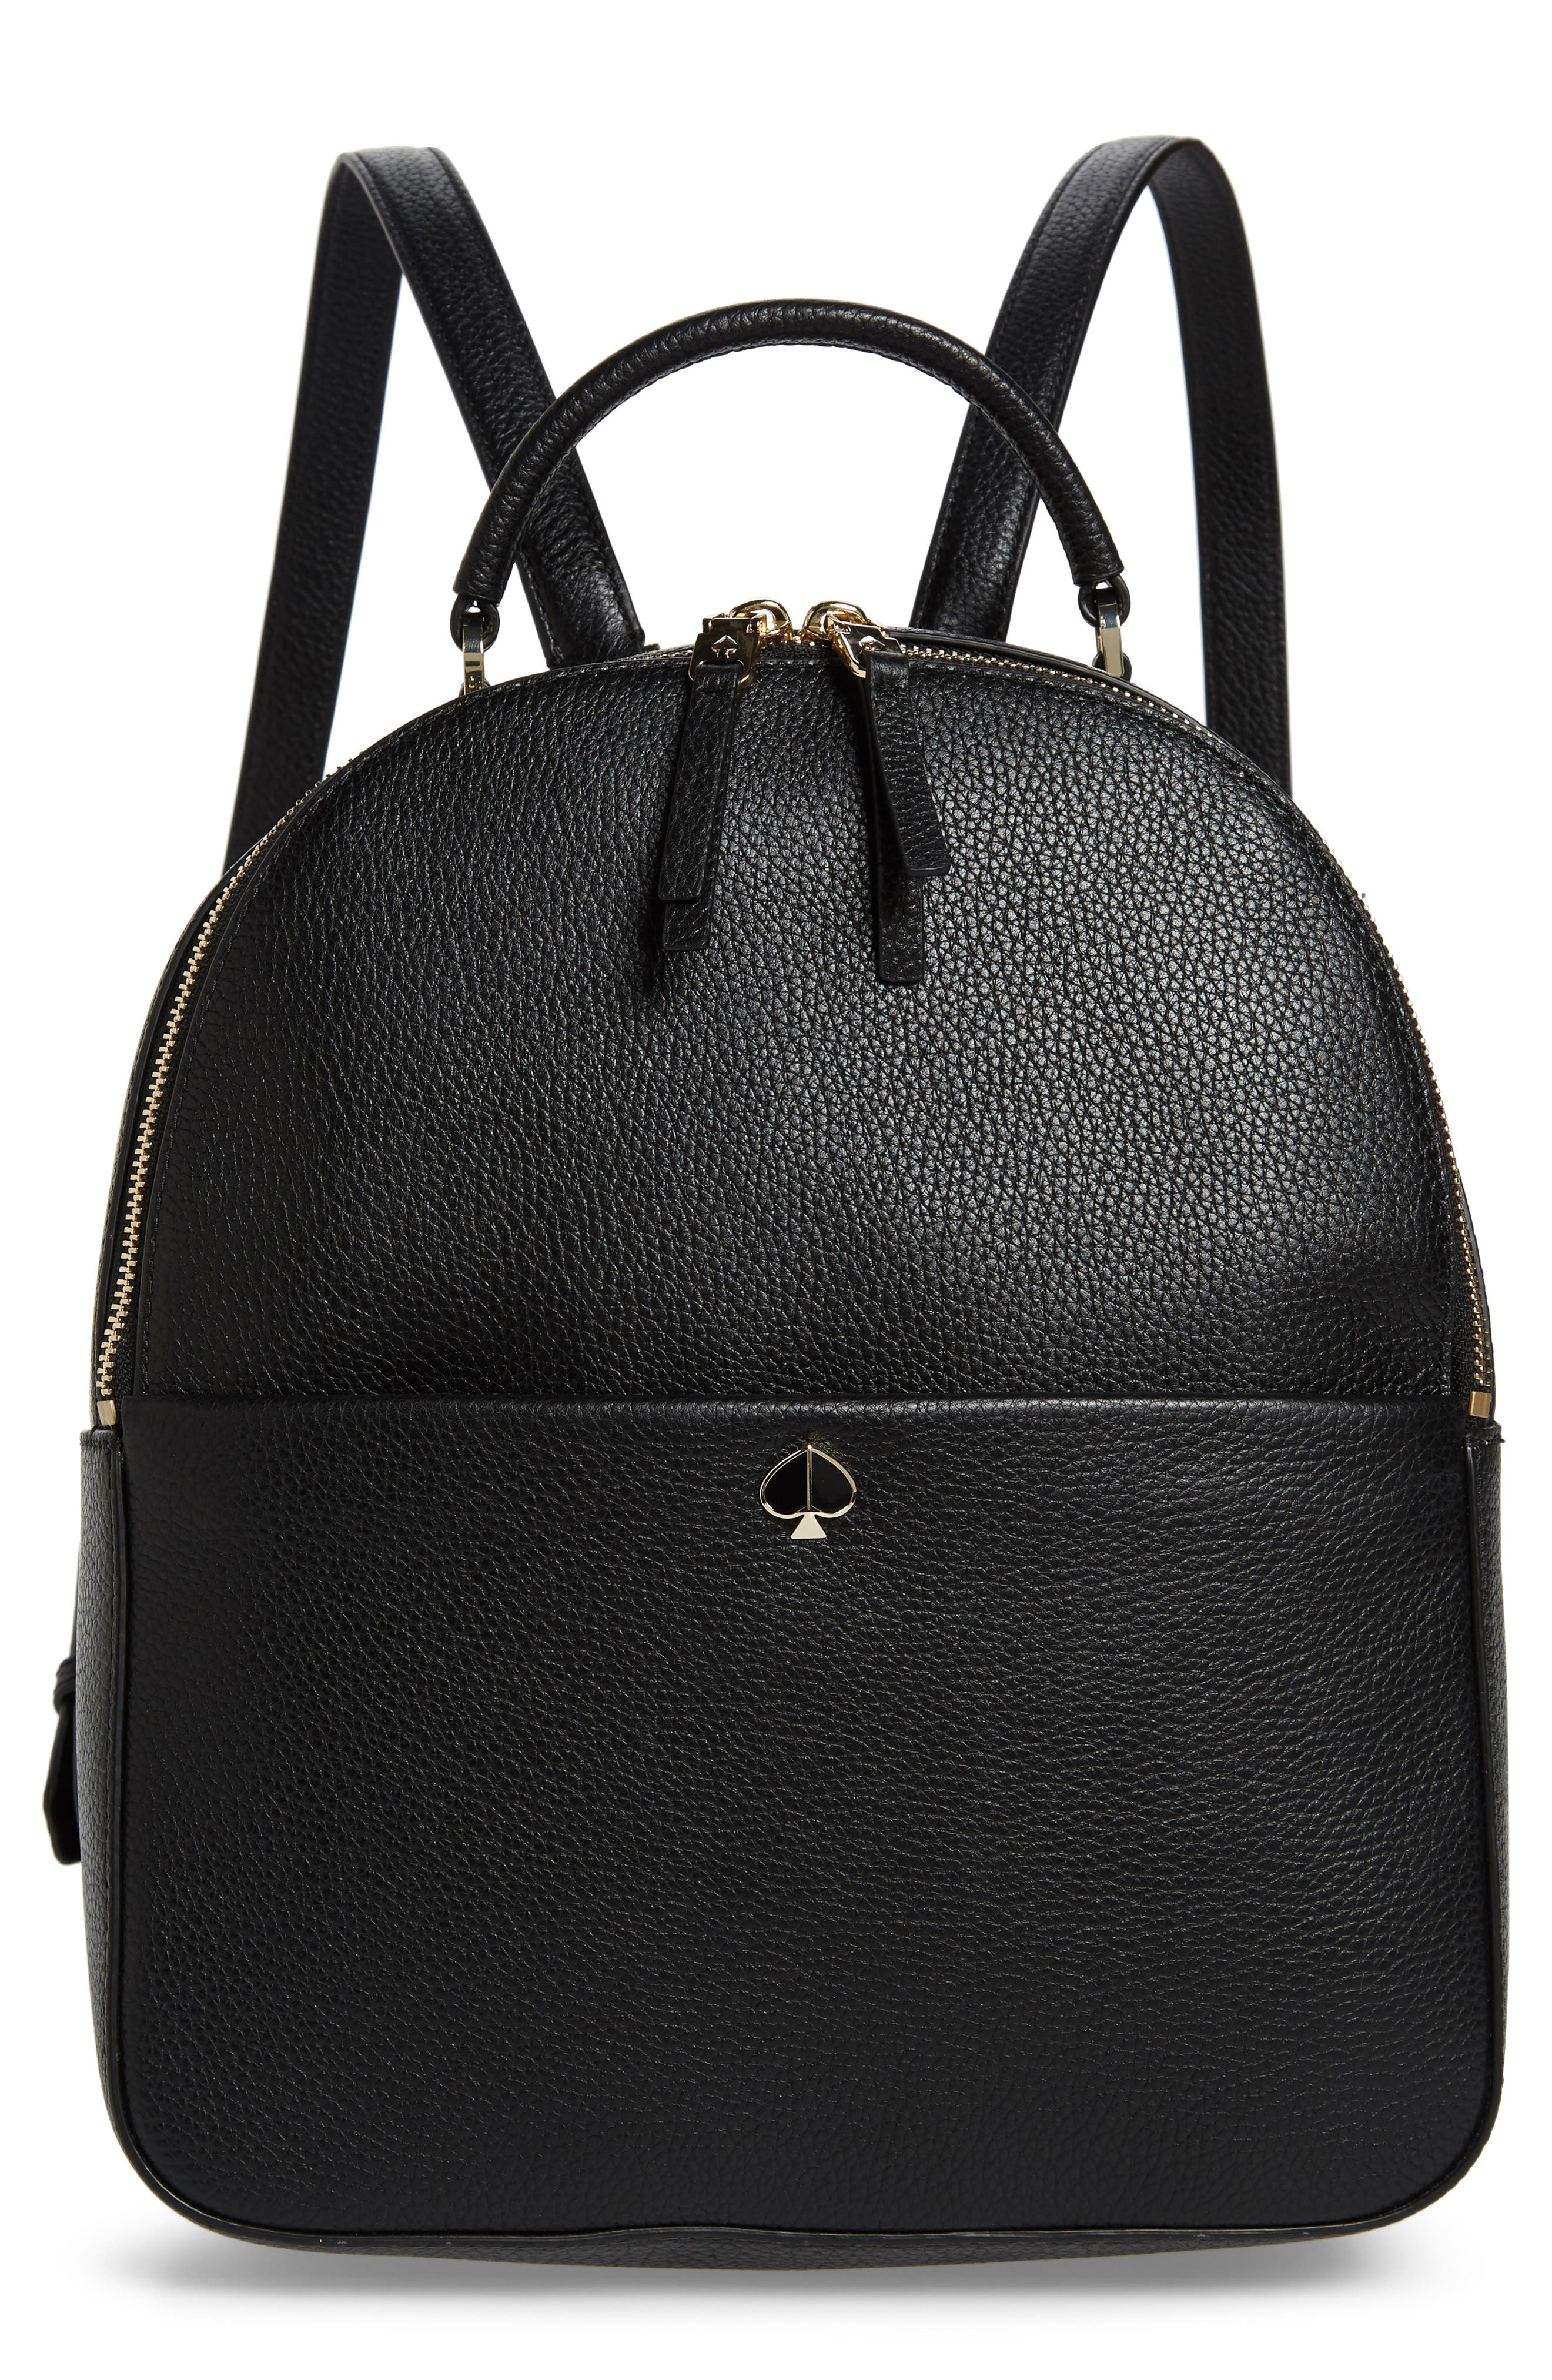 KATE SPADE NEW YORK medium polly leather backpack, Main, color, BLACK